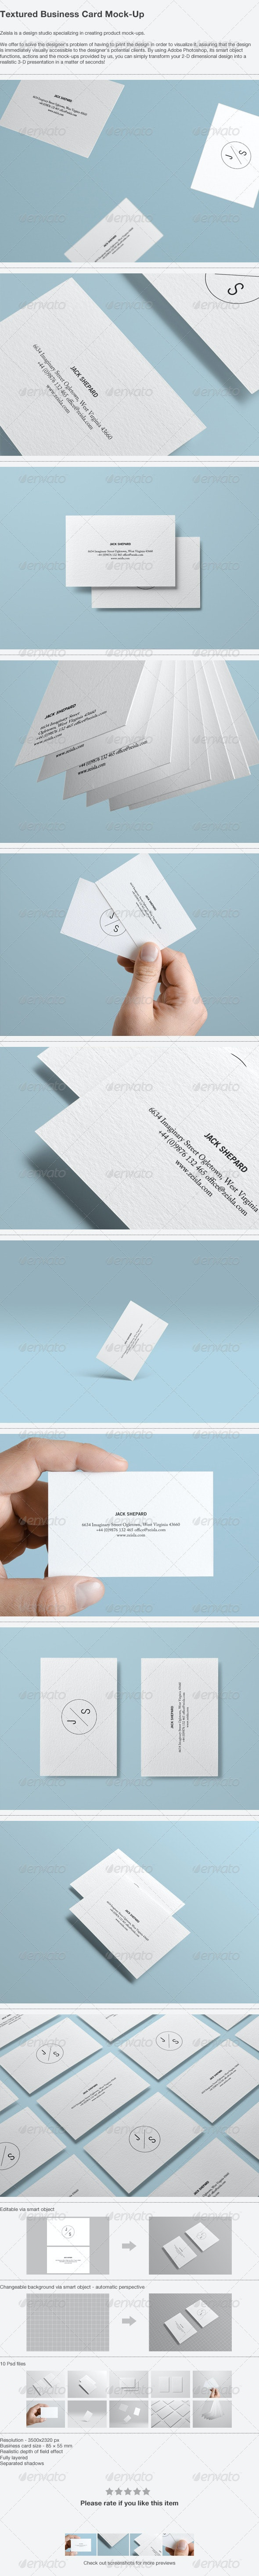 Textured Business Card Mock-up - Business Cards Print